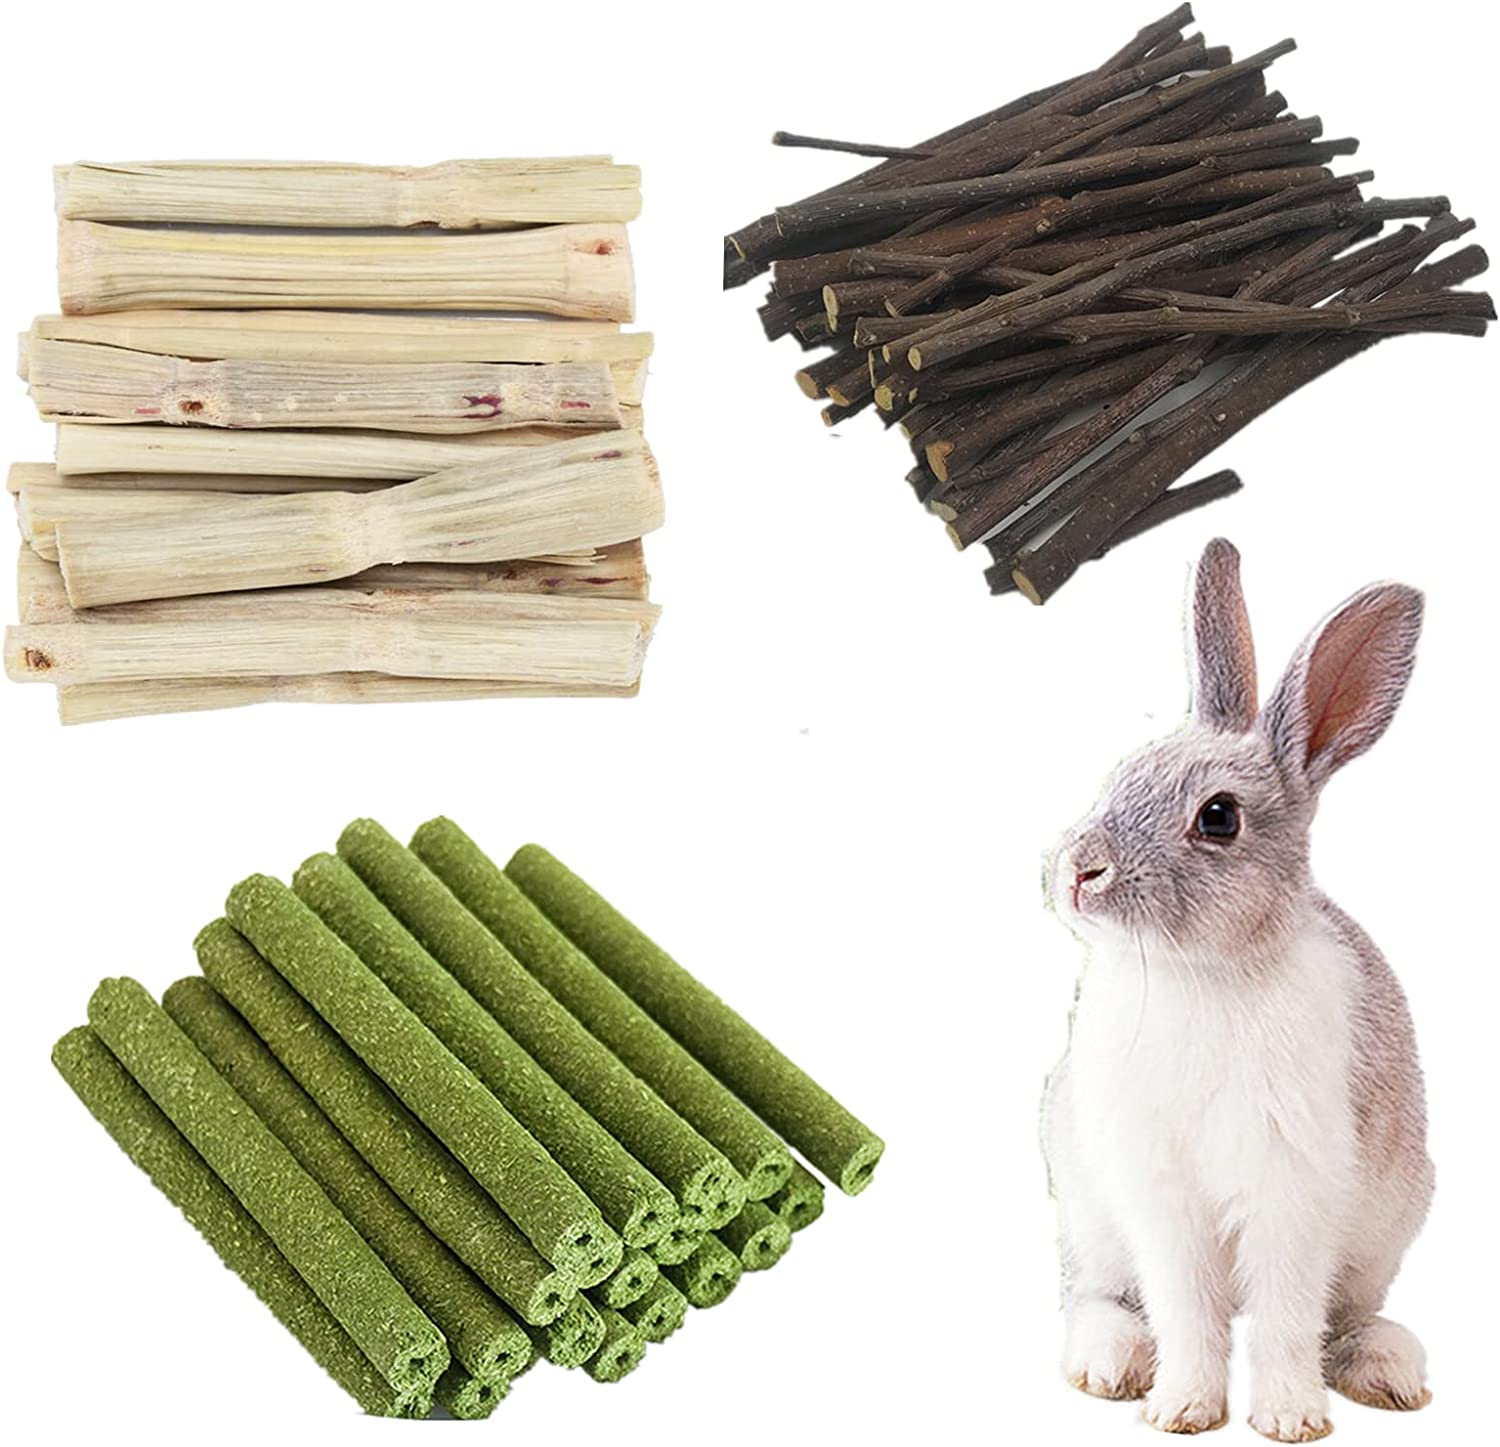 COVS 100% Organic Wood Small Animals Molar Sticks Treats Toys, Natural Apple Sticks Sweet Bamboo Timothy Hay Sticks Keep Small Animals Healthy and Active for Hamster Guinea Pig Chinchillas (100g)